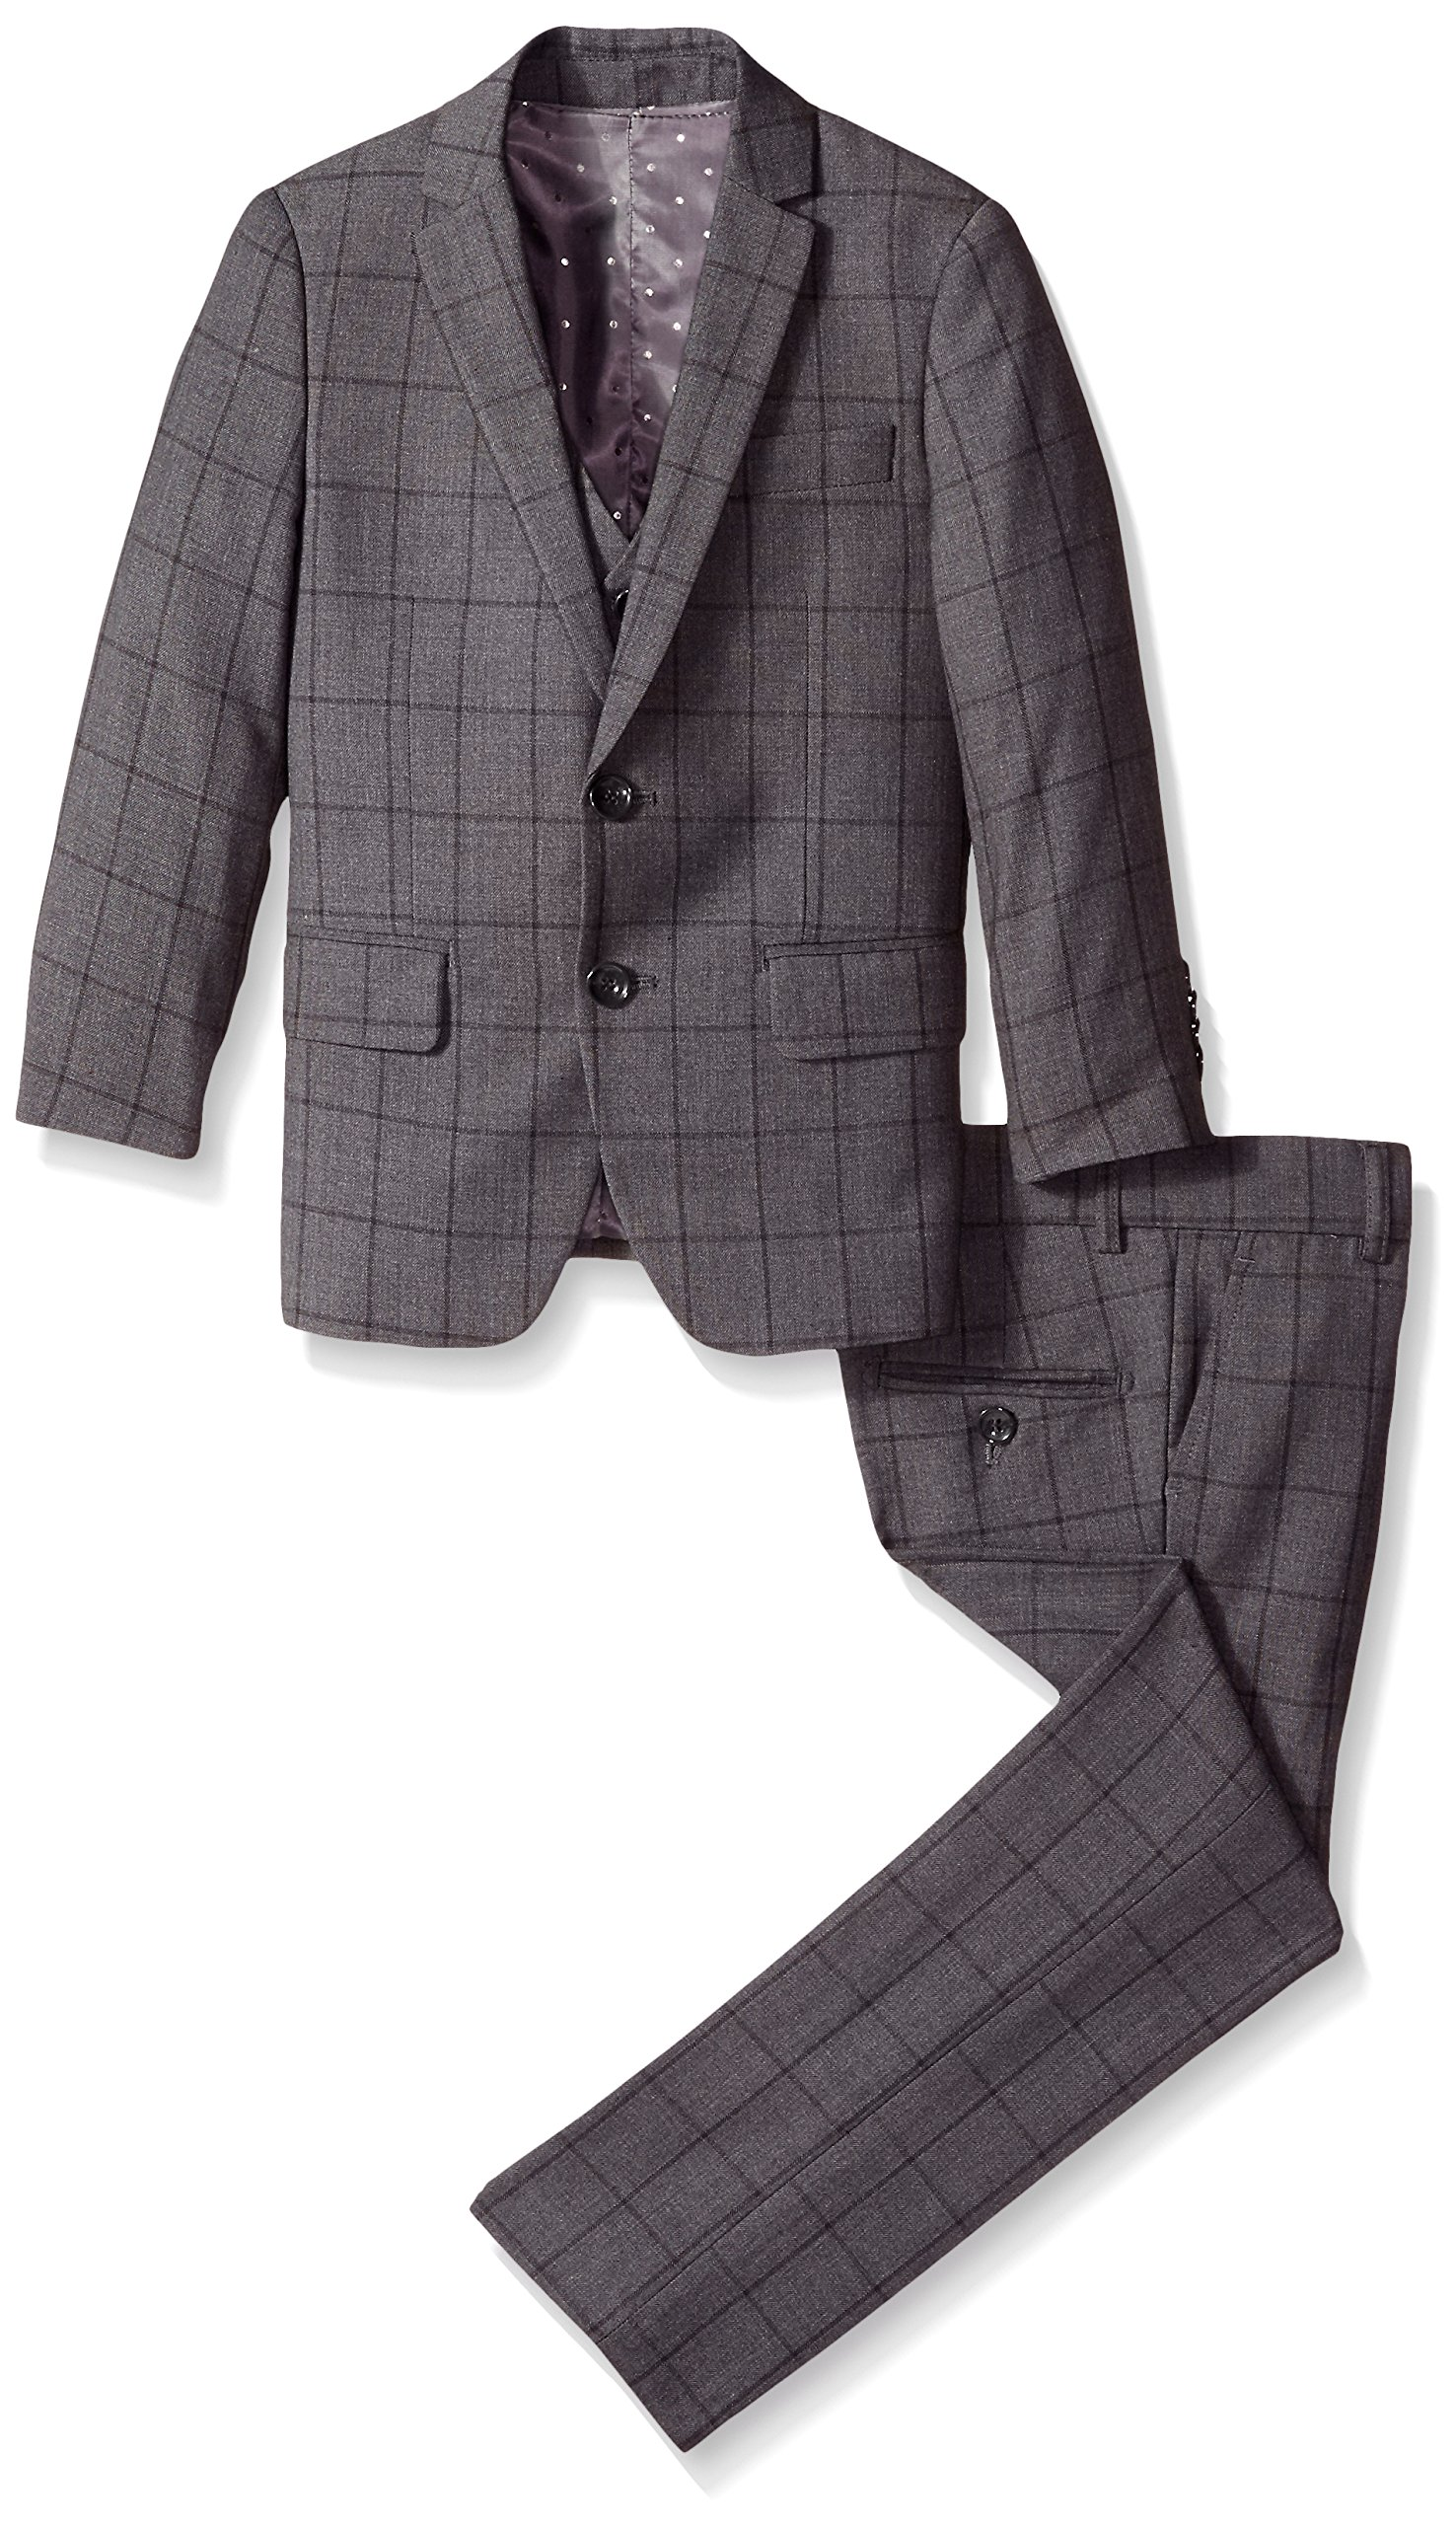 Isaac Mizrahi Little Boys' 3 Piece Check Suit, Grey, 3 by Isaac Mizrahi